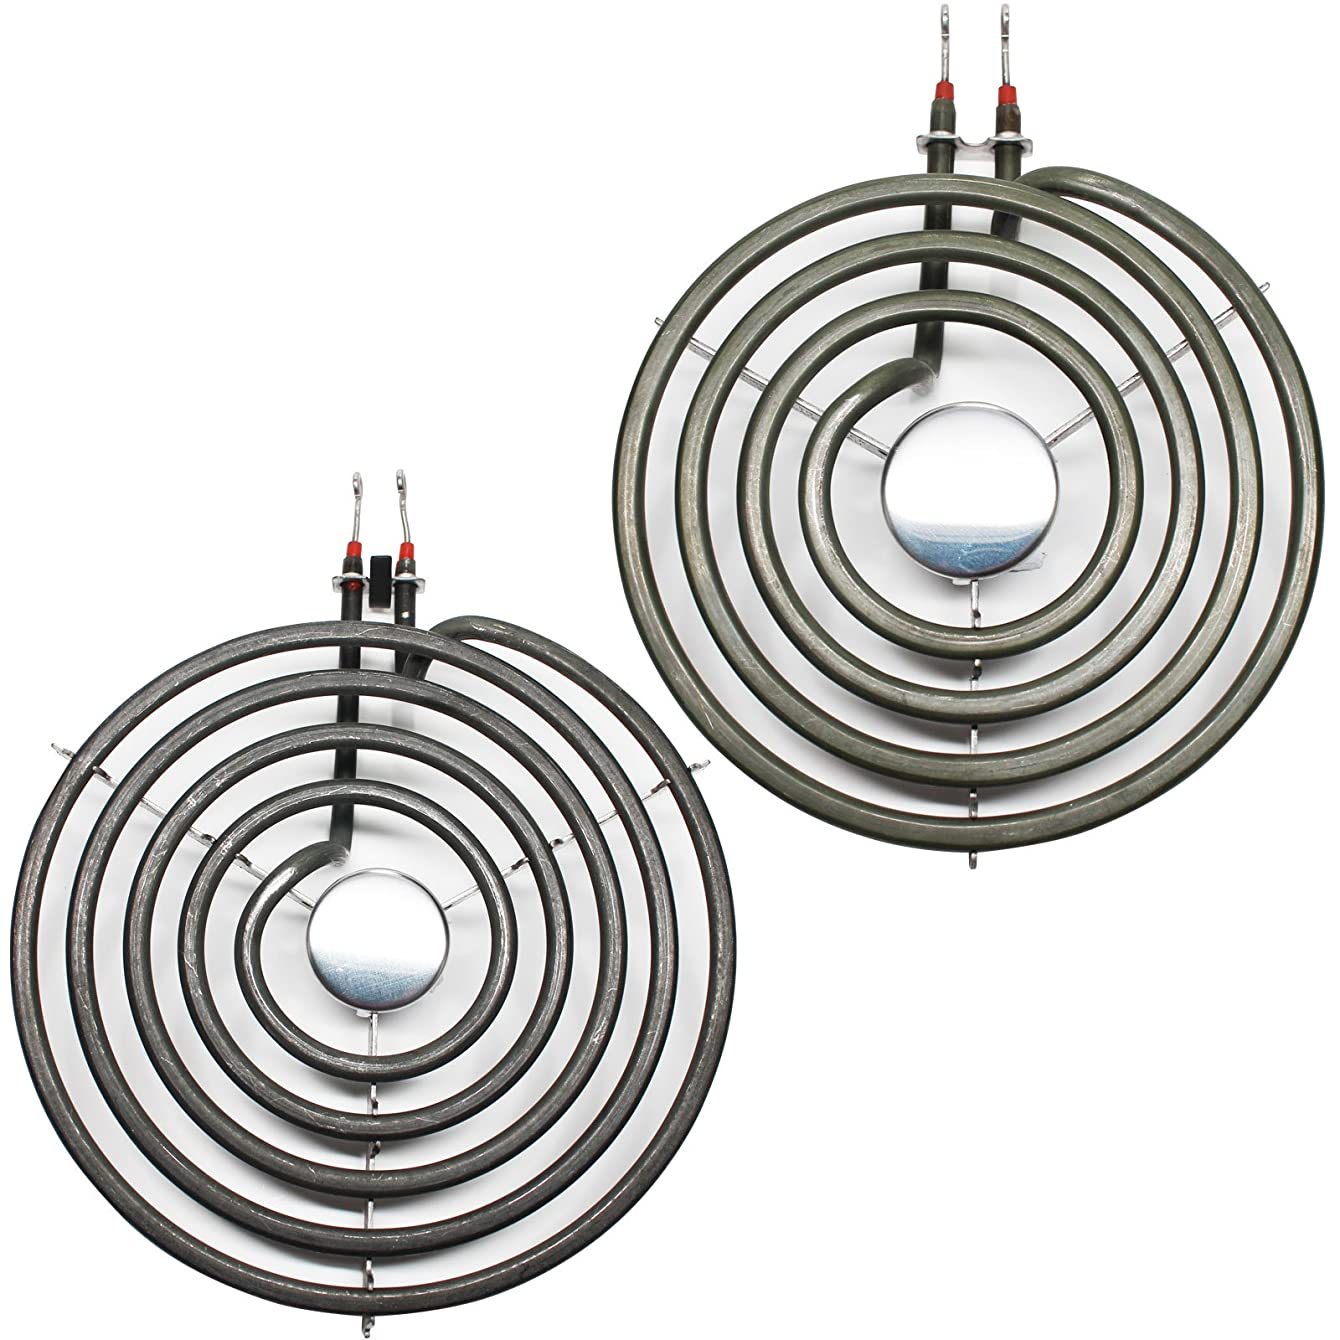 Replacement Whirlpool GR395LXGT2 8 inch 5 Turns & 6 inch 4 Turns Surface Burner Elements - Compatible Whirlpool 9761345 & 660532 Heating Element for Range, Stove & Cooktop